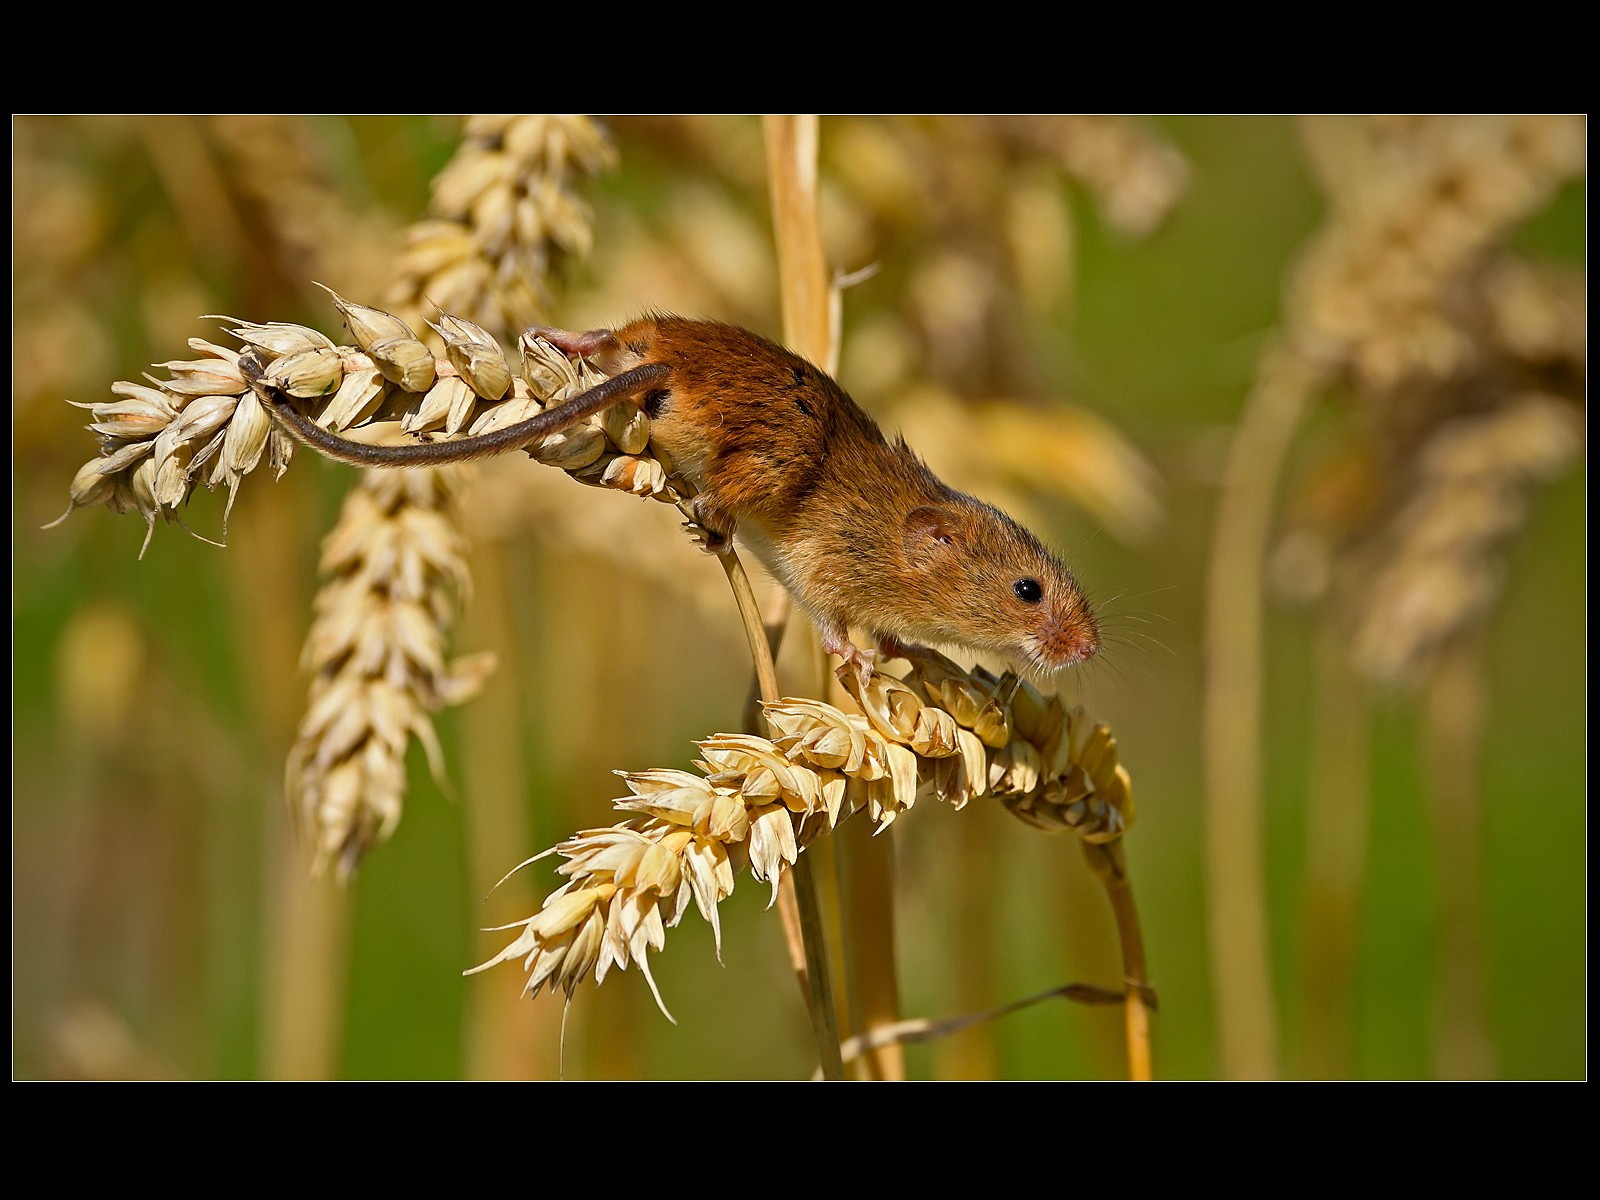 Harvest Mouse on Corn